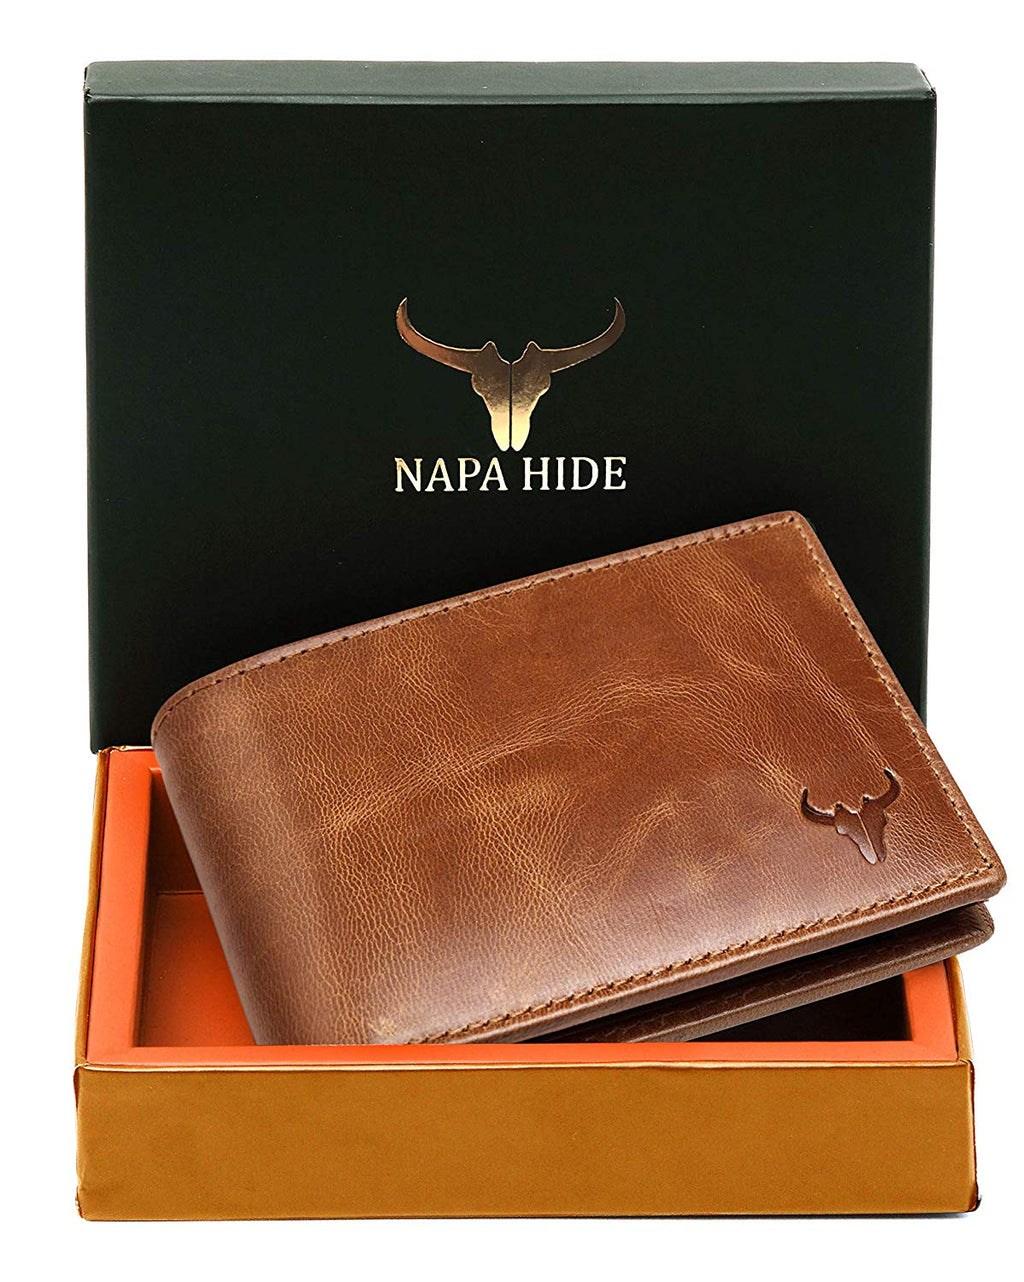 Napa Hide Brown Men's Wallet (NPH012 BRN TN) - WILDHORN